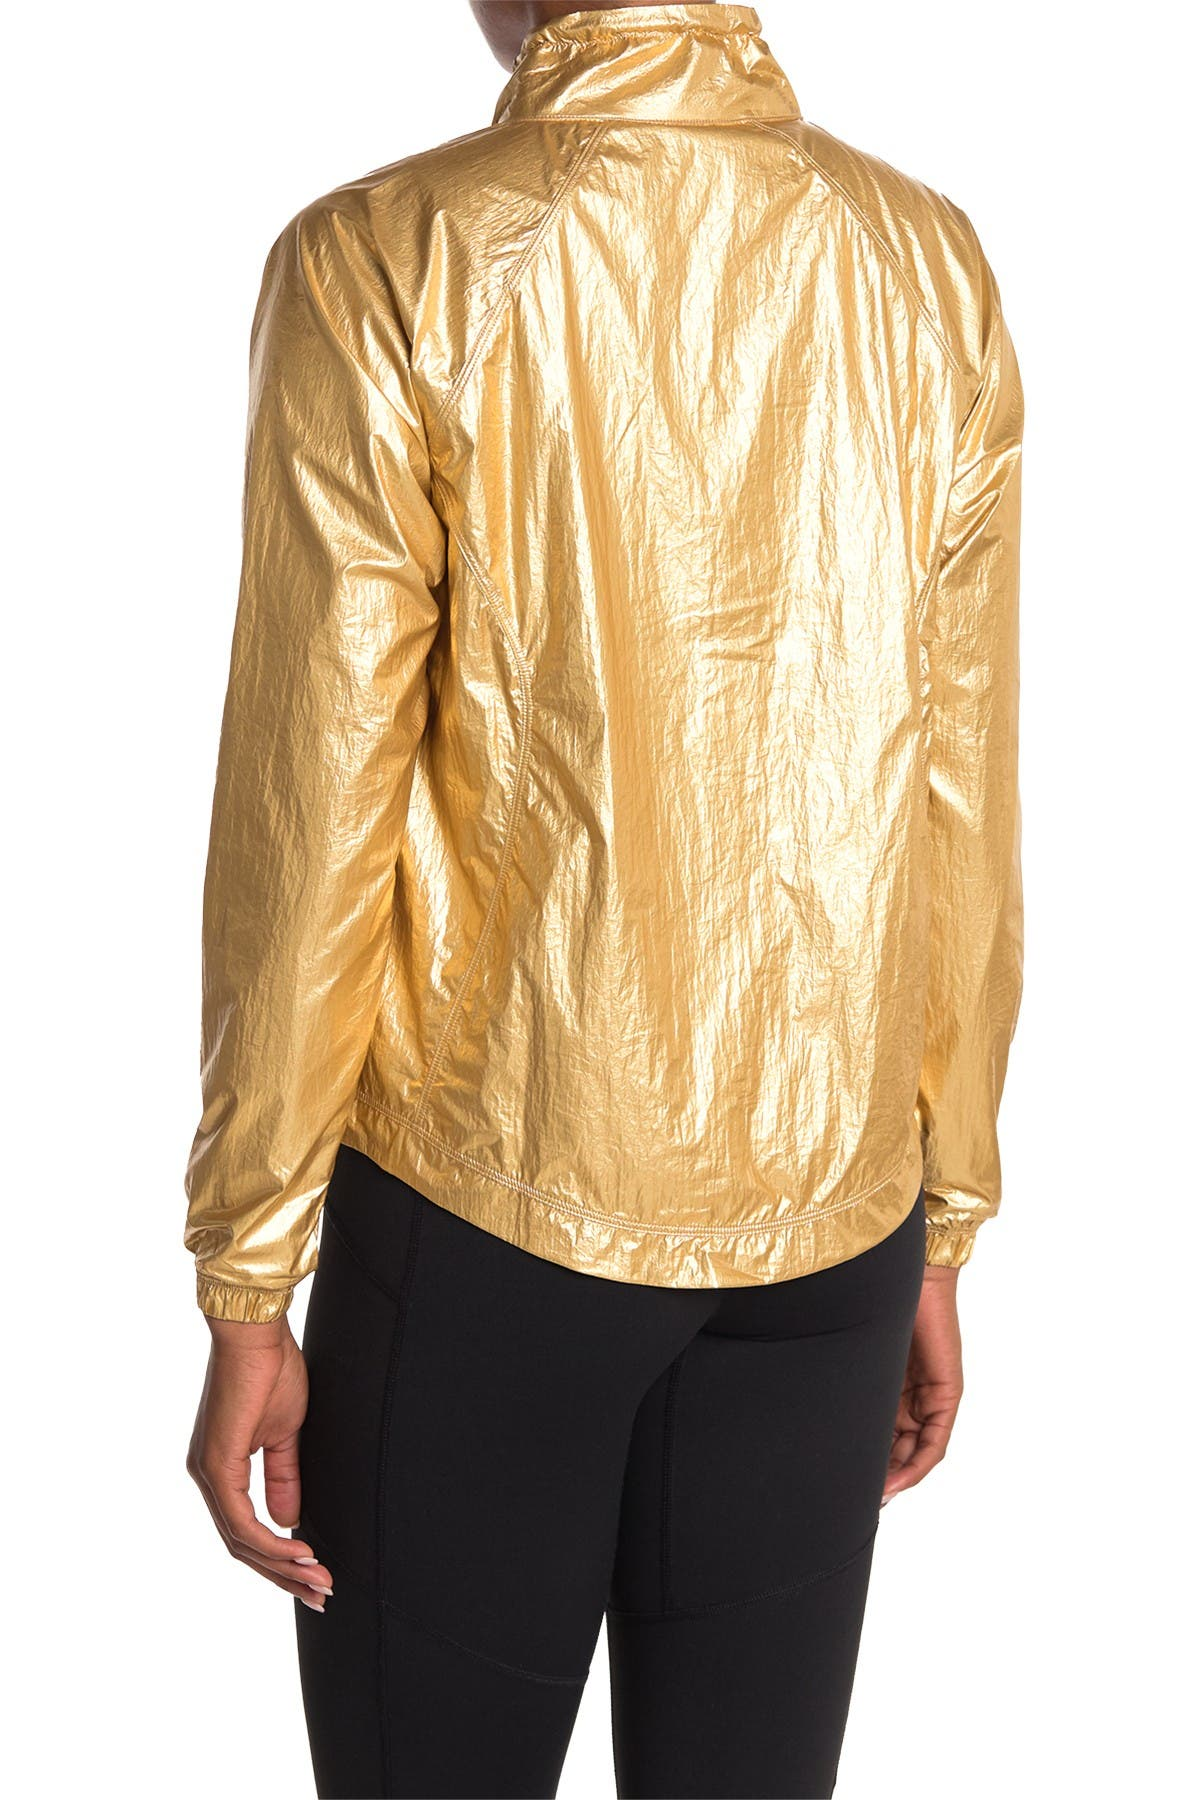 Image of Good American Medal Winning Running Jacket